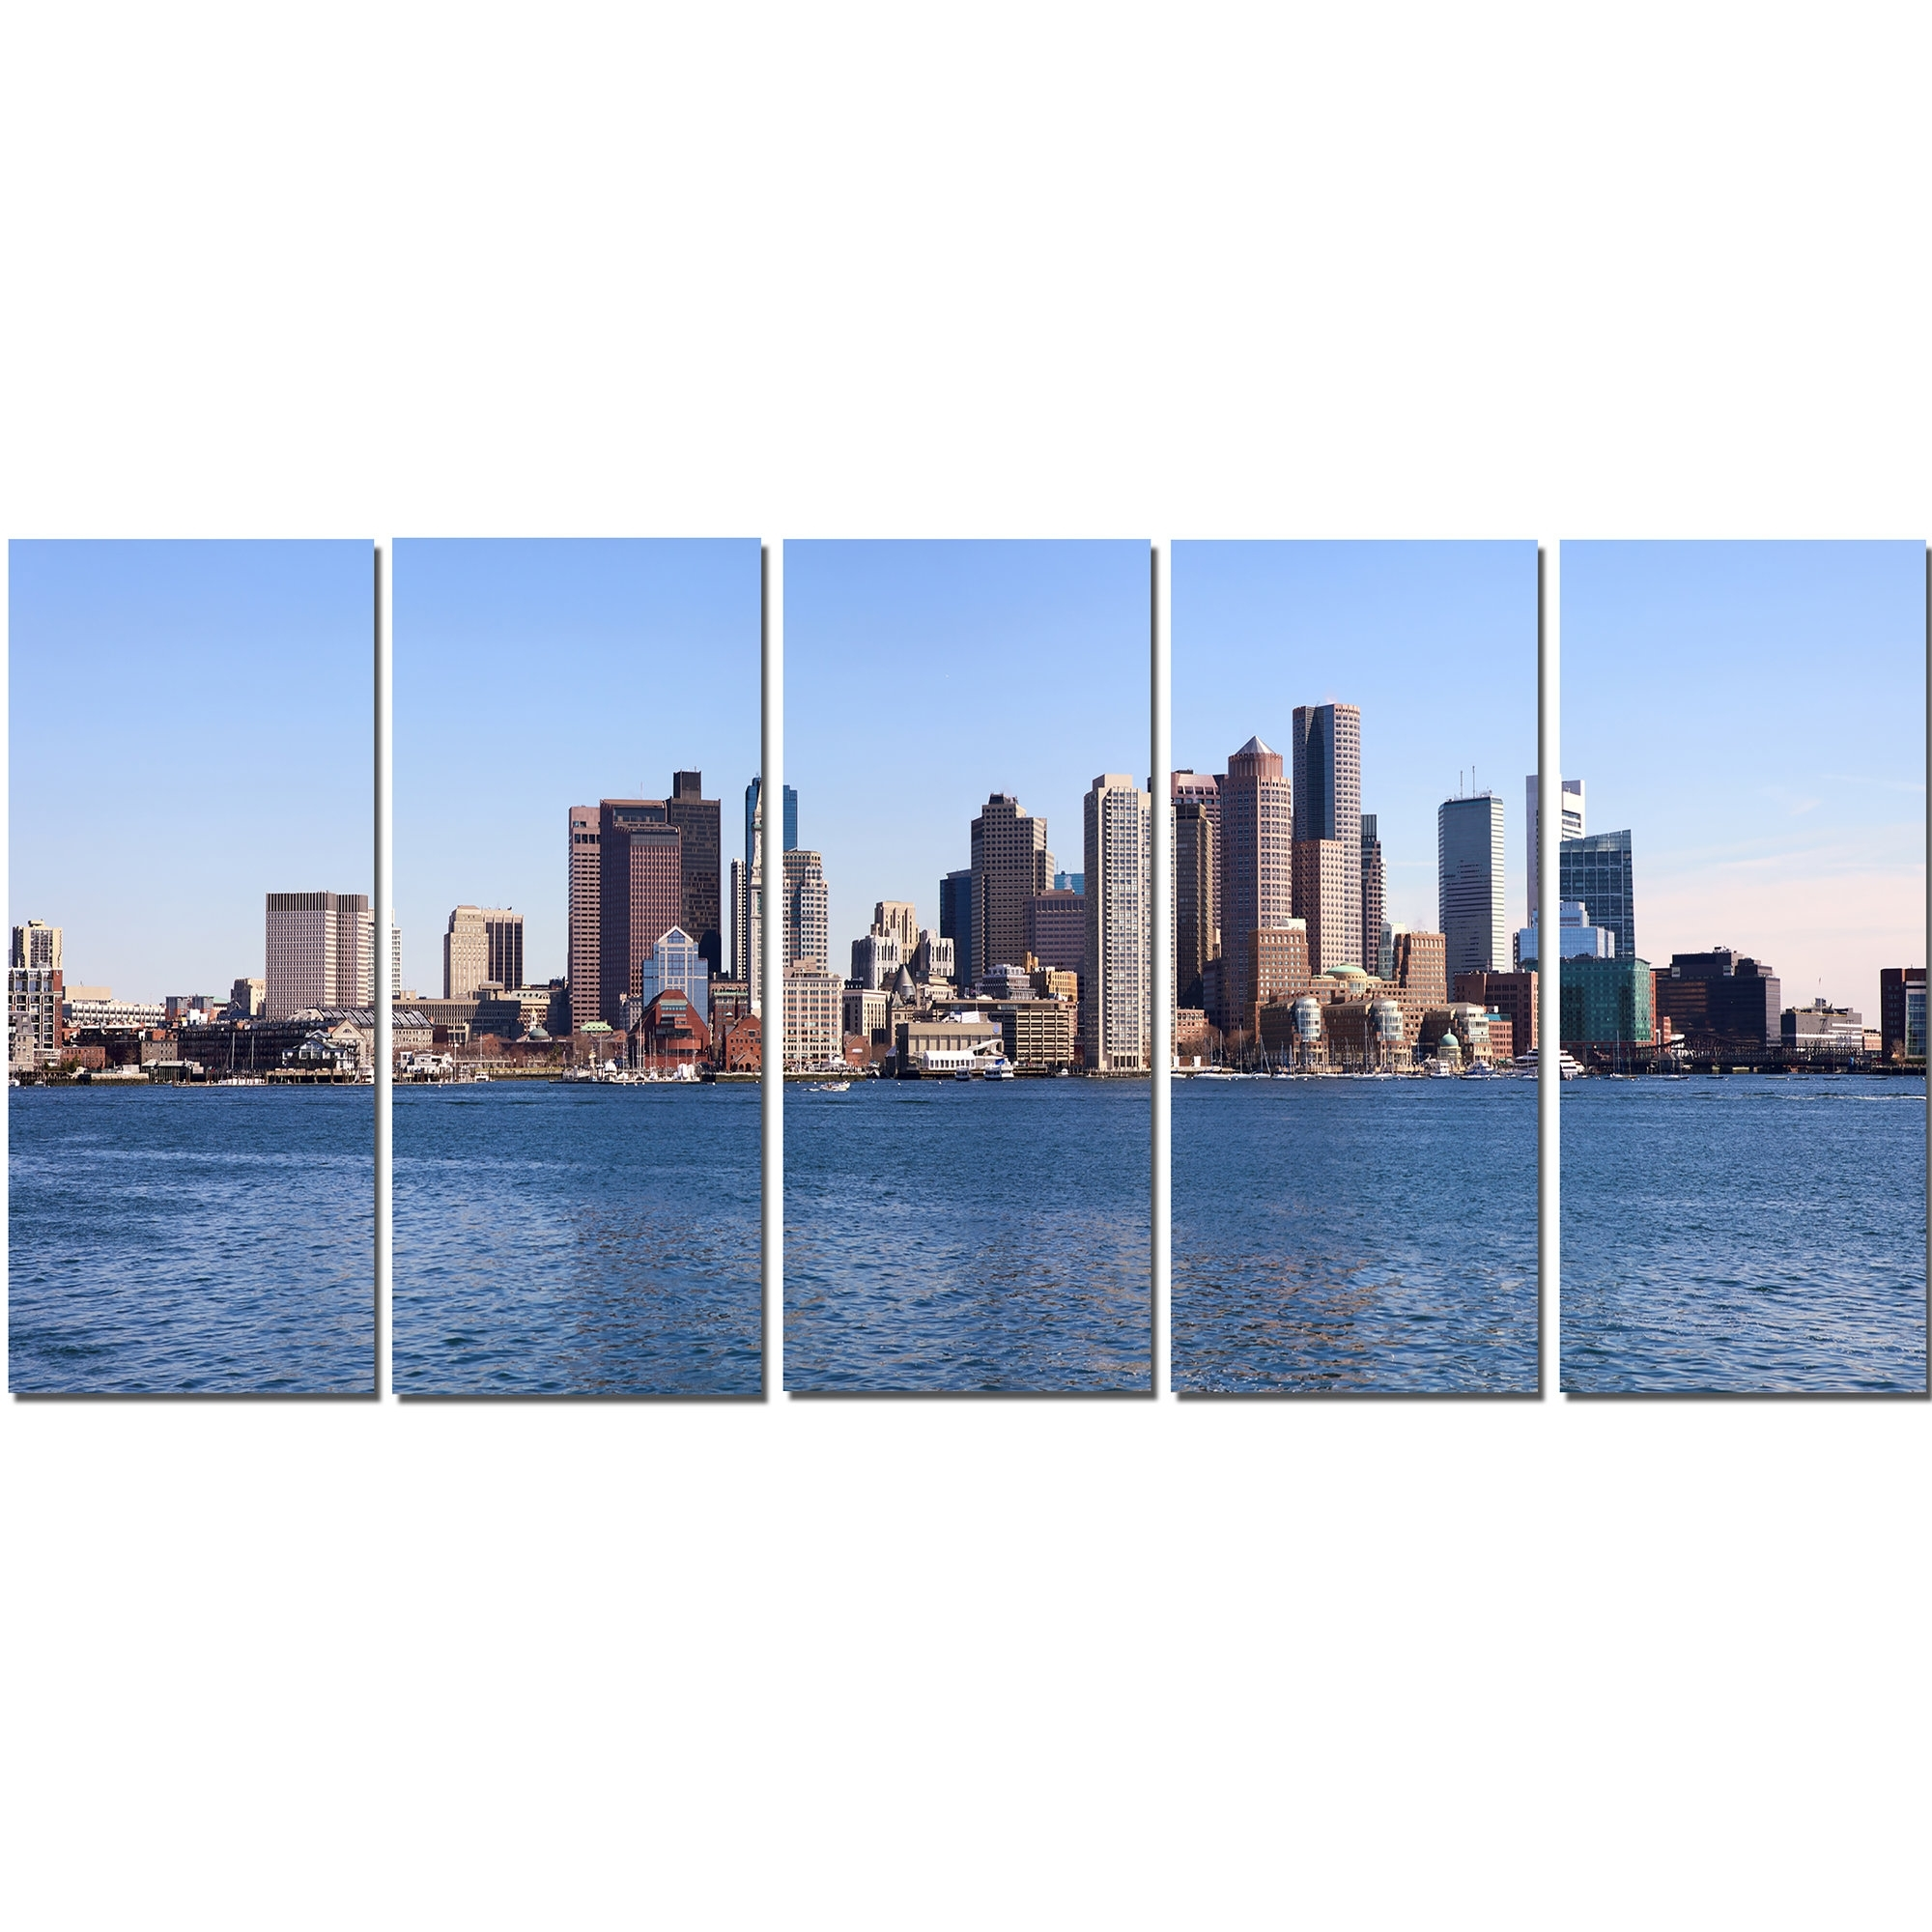 Designart Boston Skyline Panorama 5 Piece Wall Art On Wrapped Canvas With Preferred Boston Wall Art (View 11 of 15)